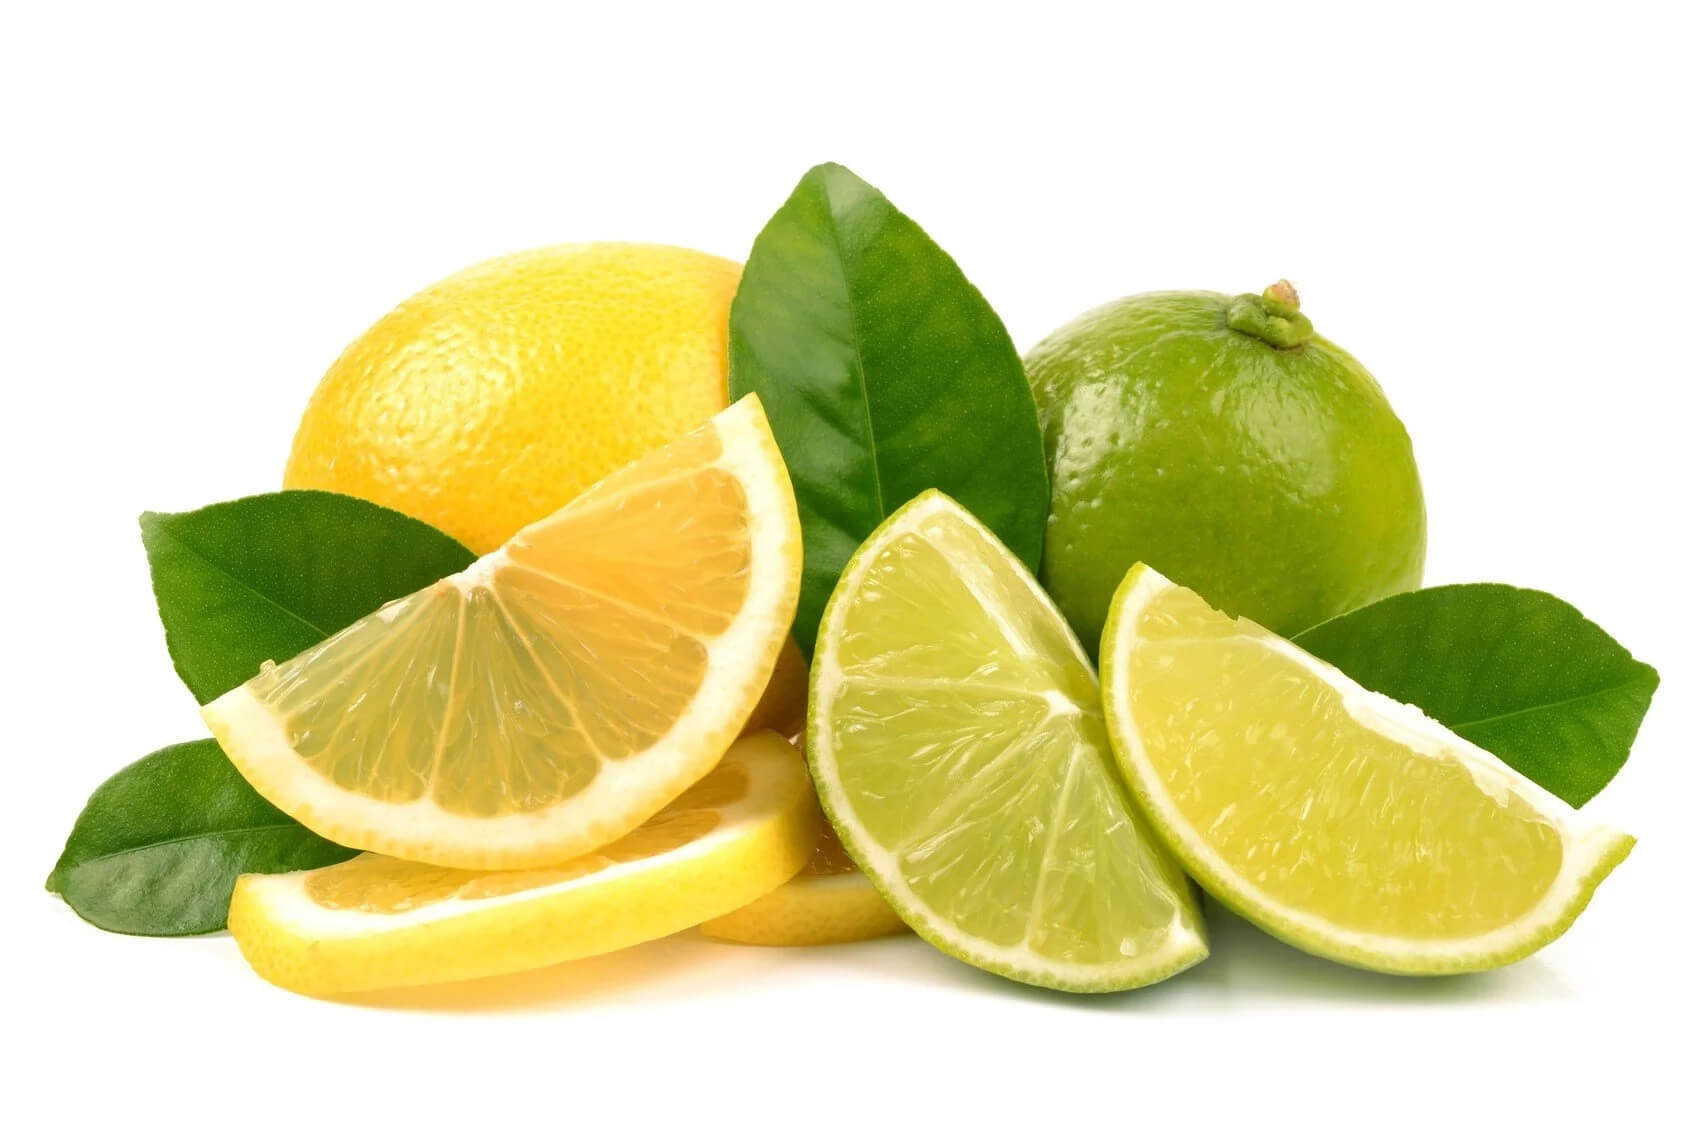 lemon - Natural ways to keep your skin looking younger